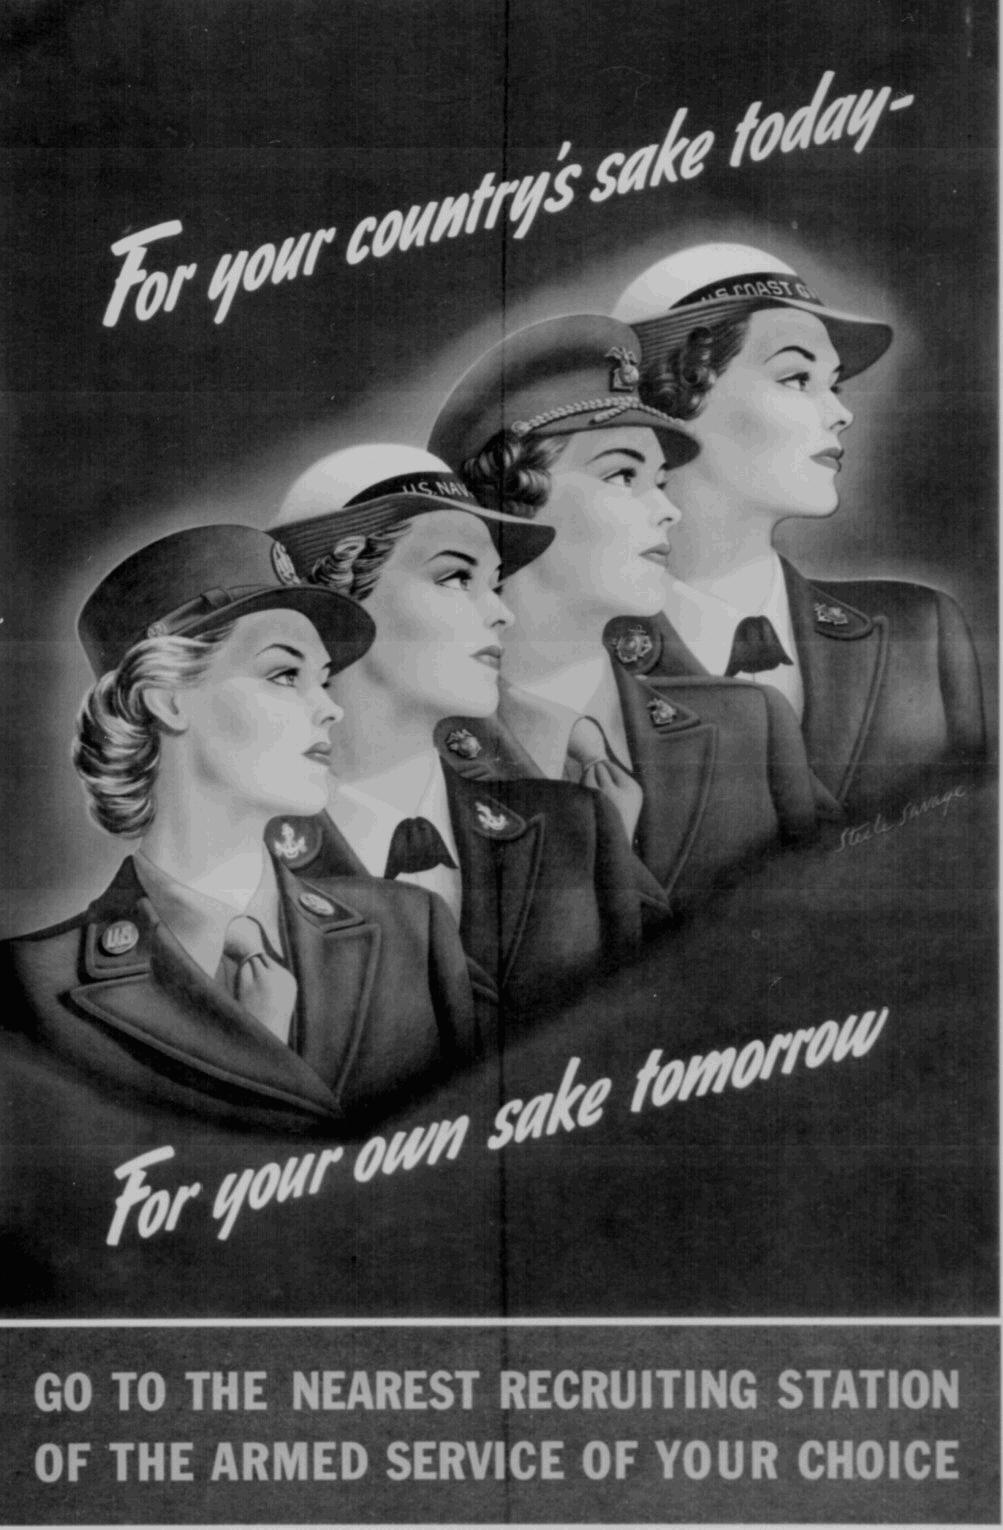 World War II Recruitment Poster for Women in the Military